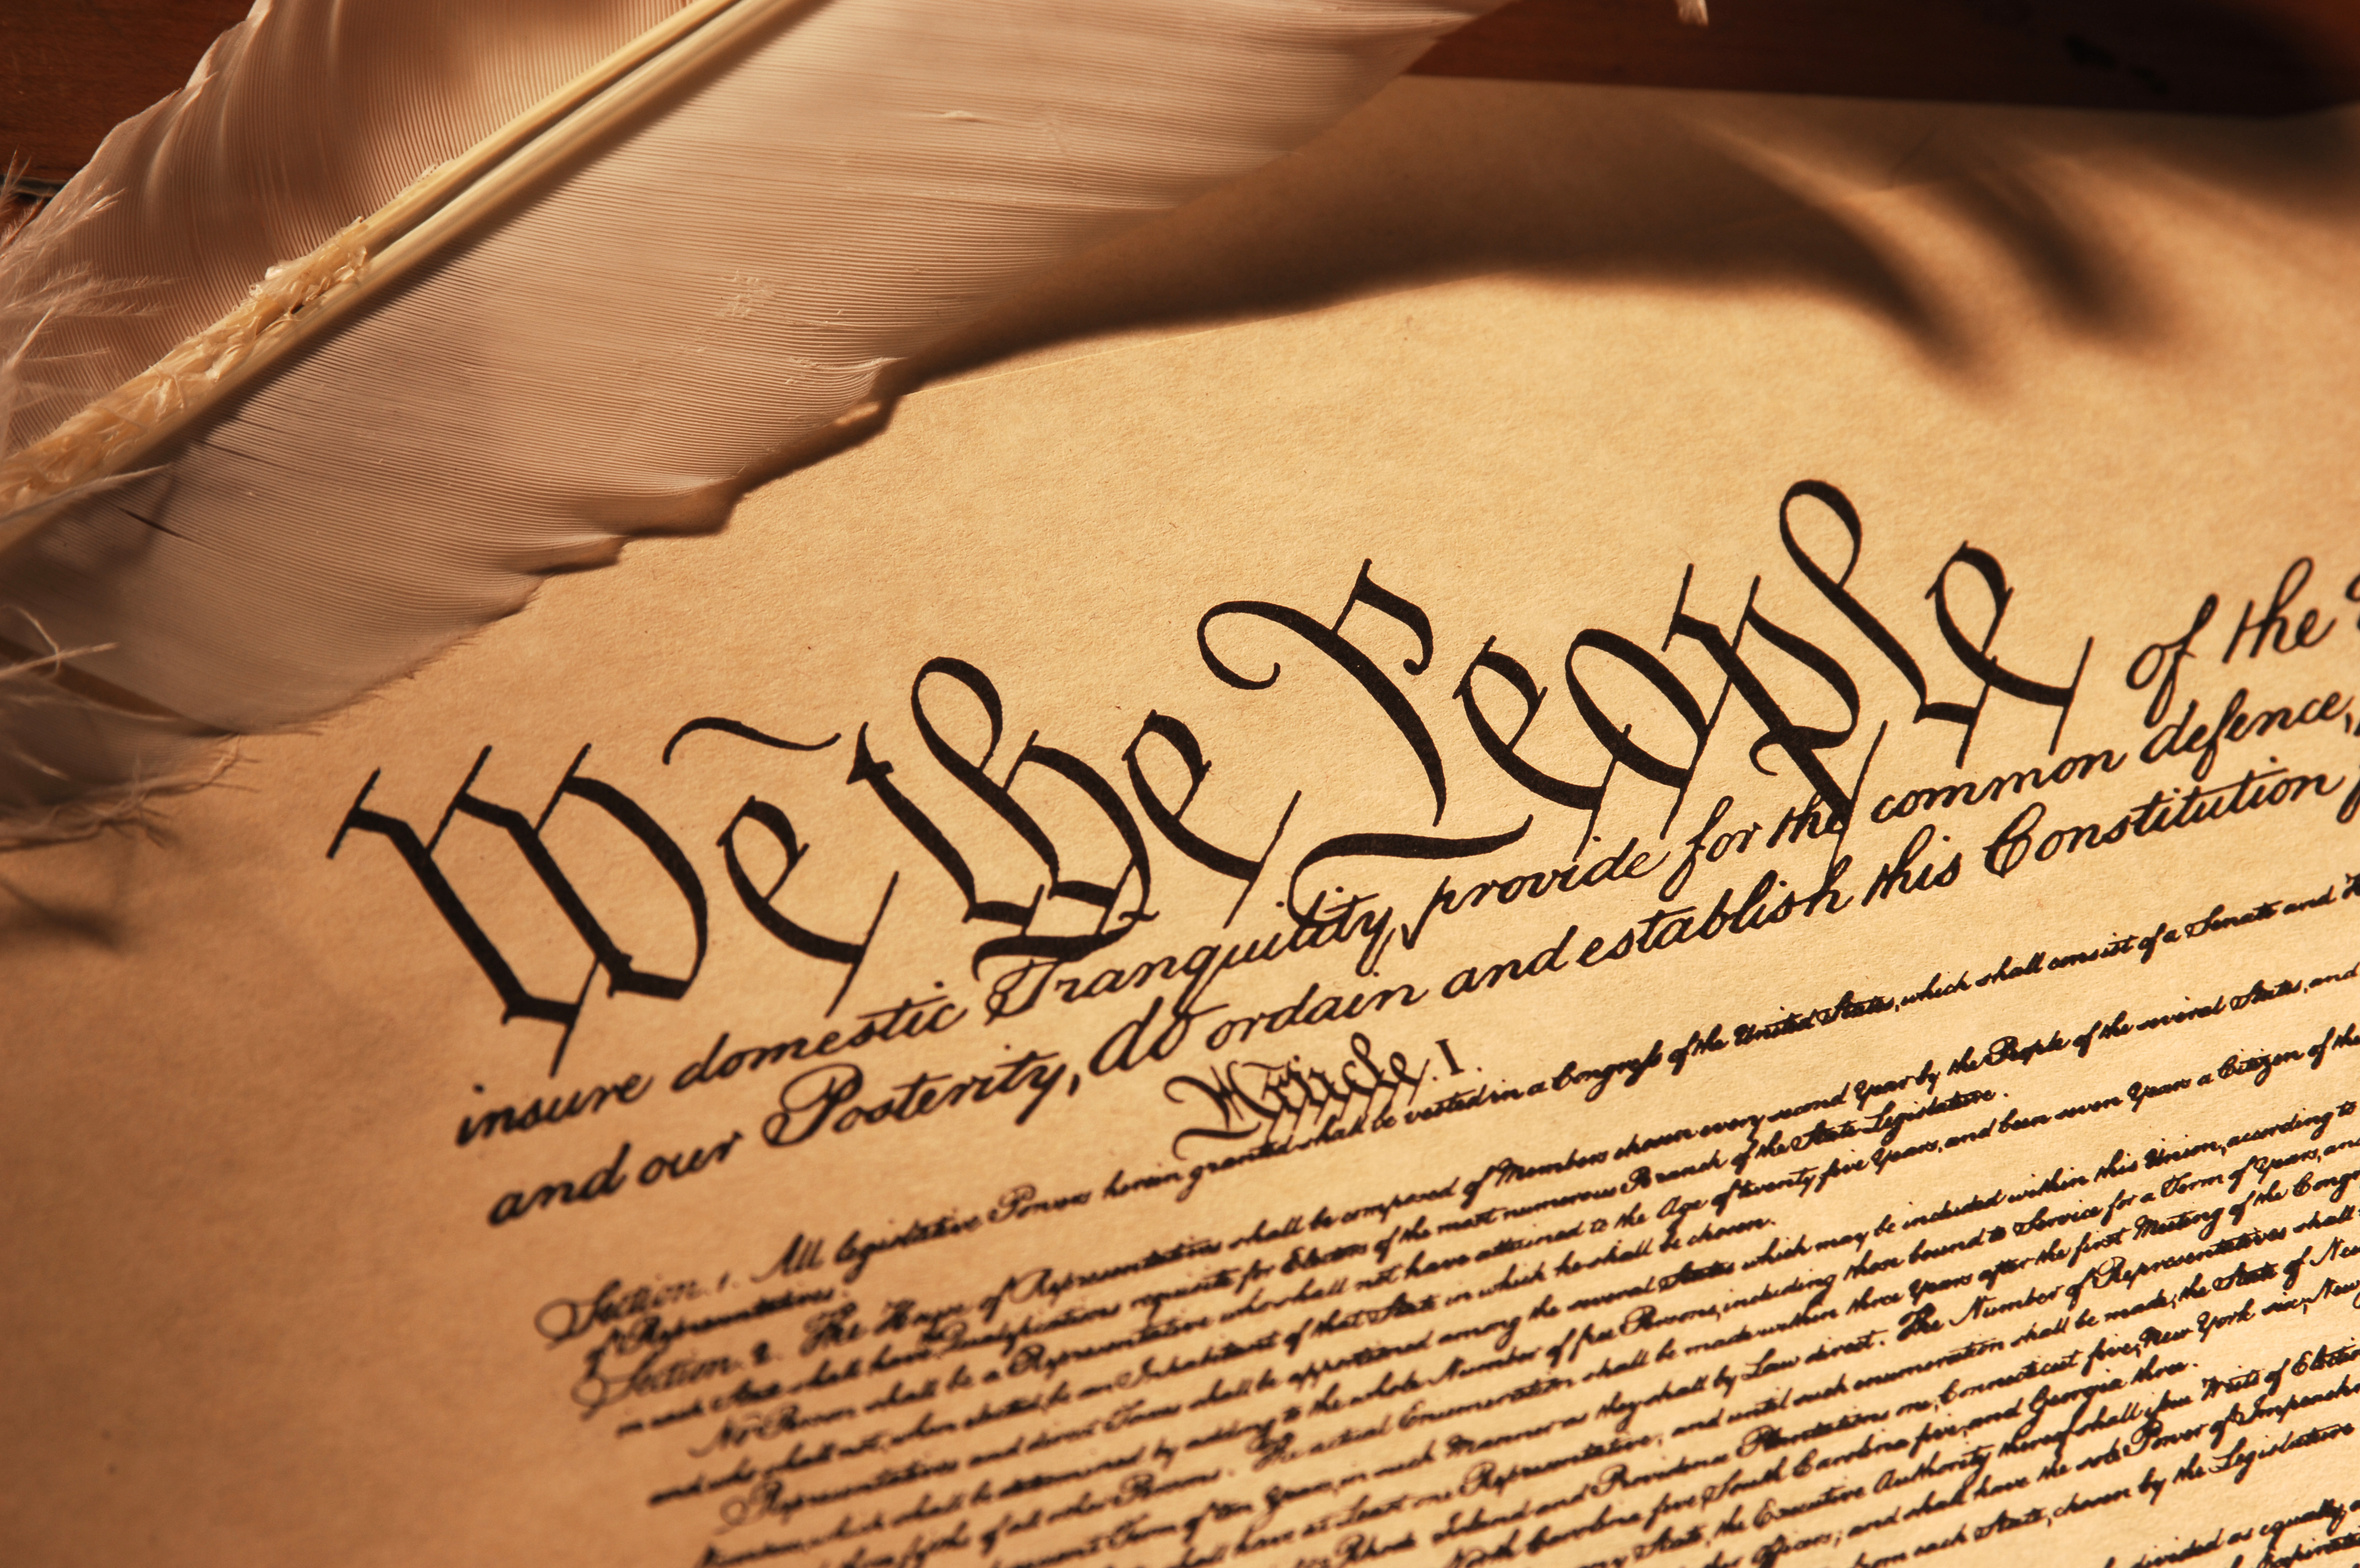 How Did Alexander Hamilton And James Madison View The Constitution